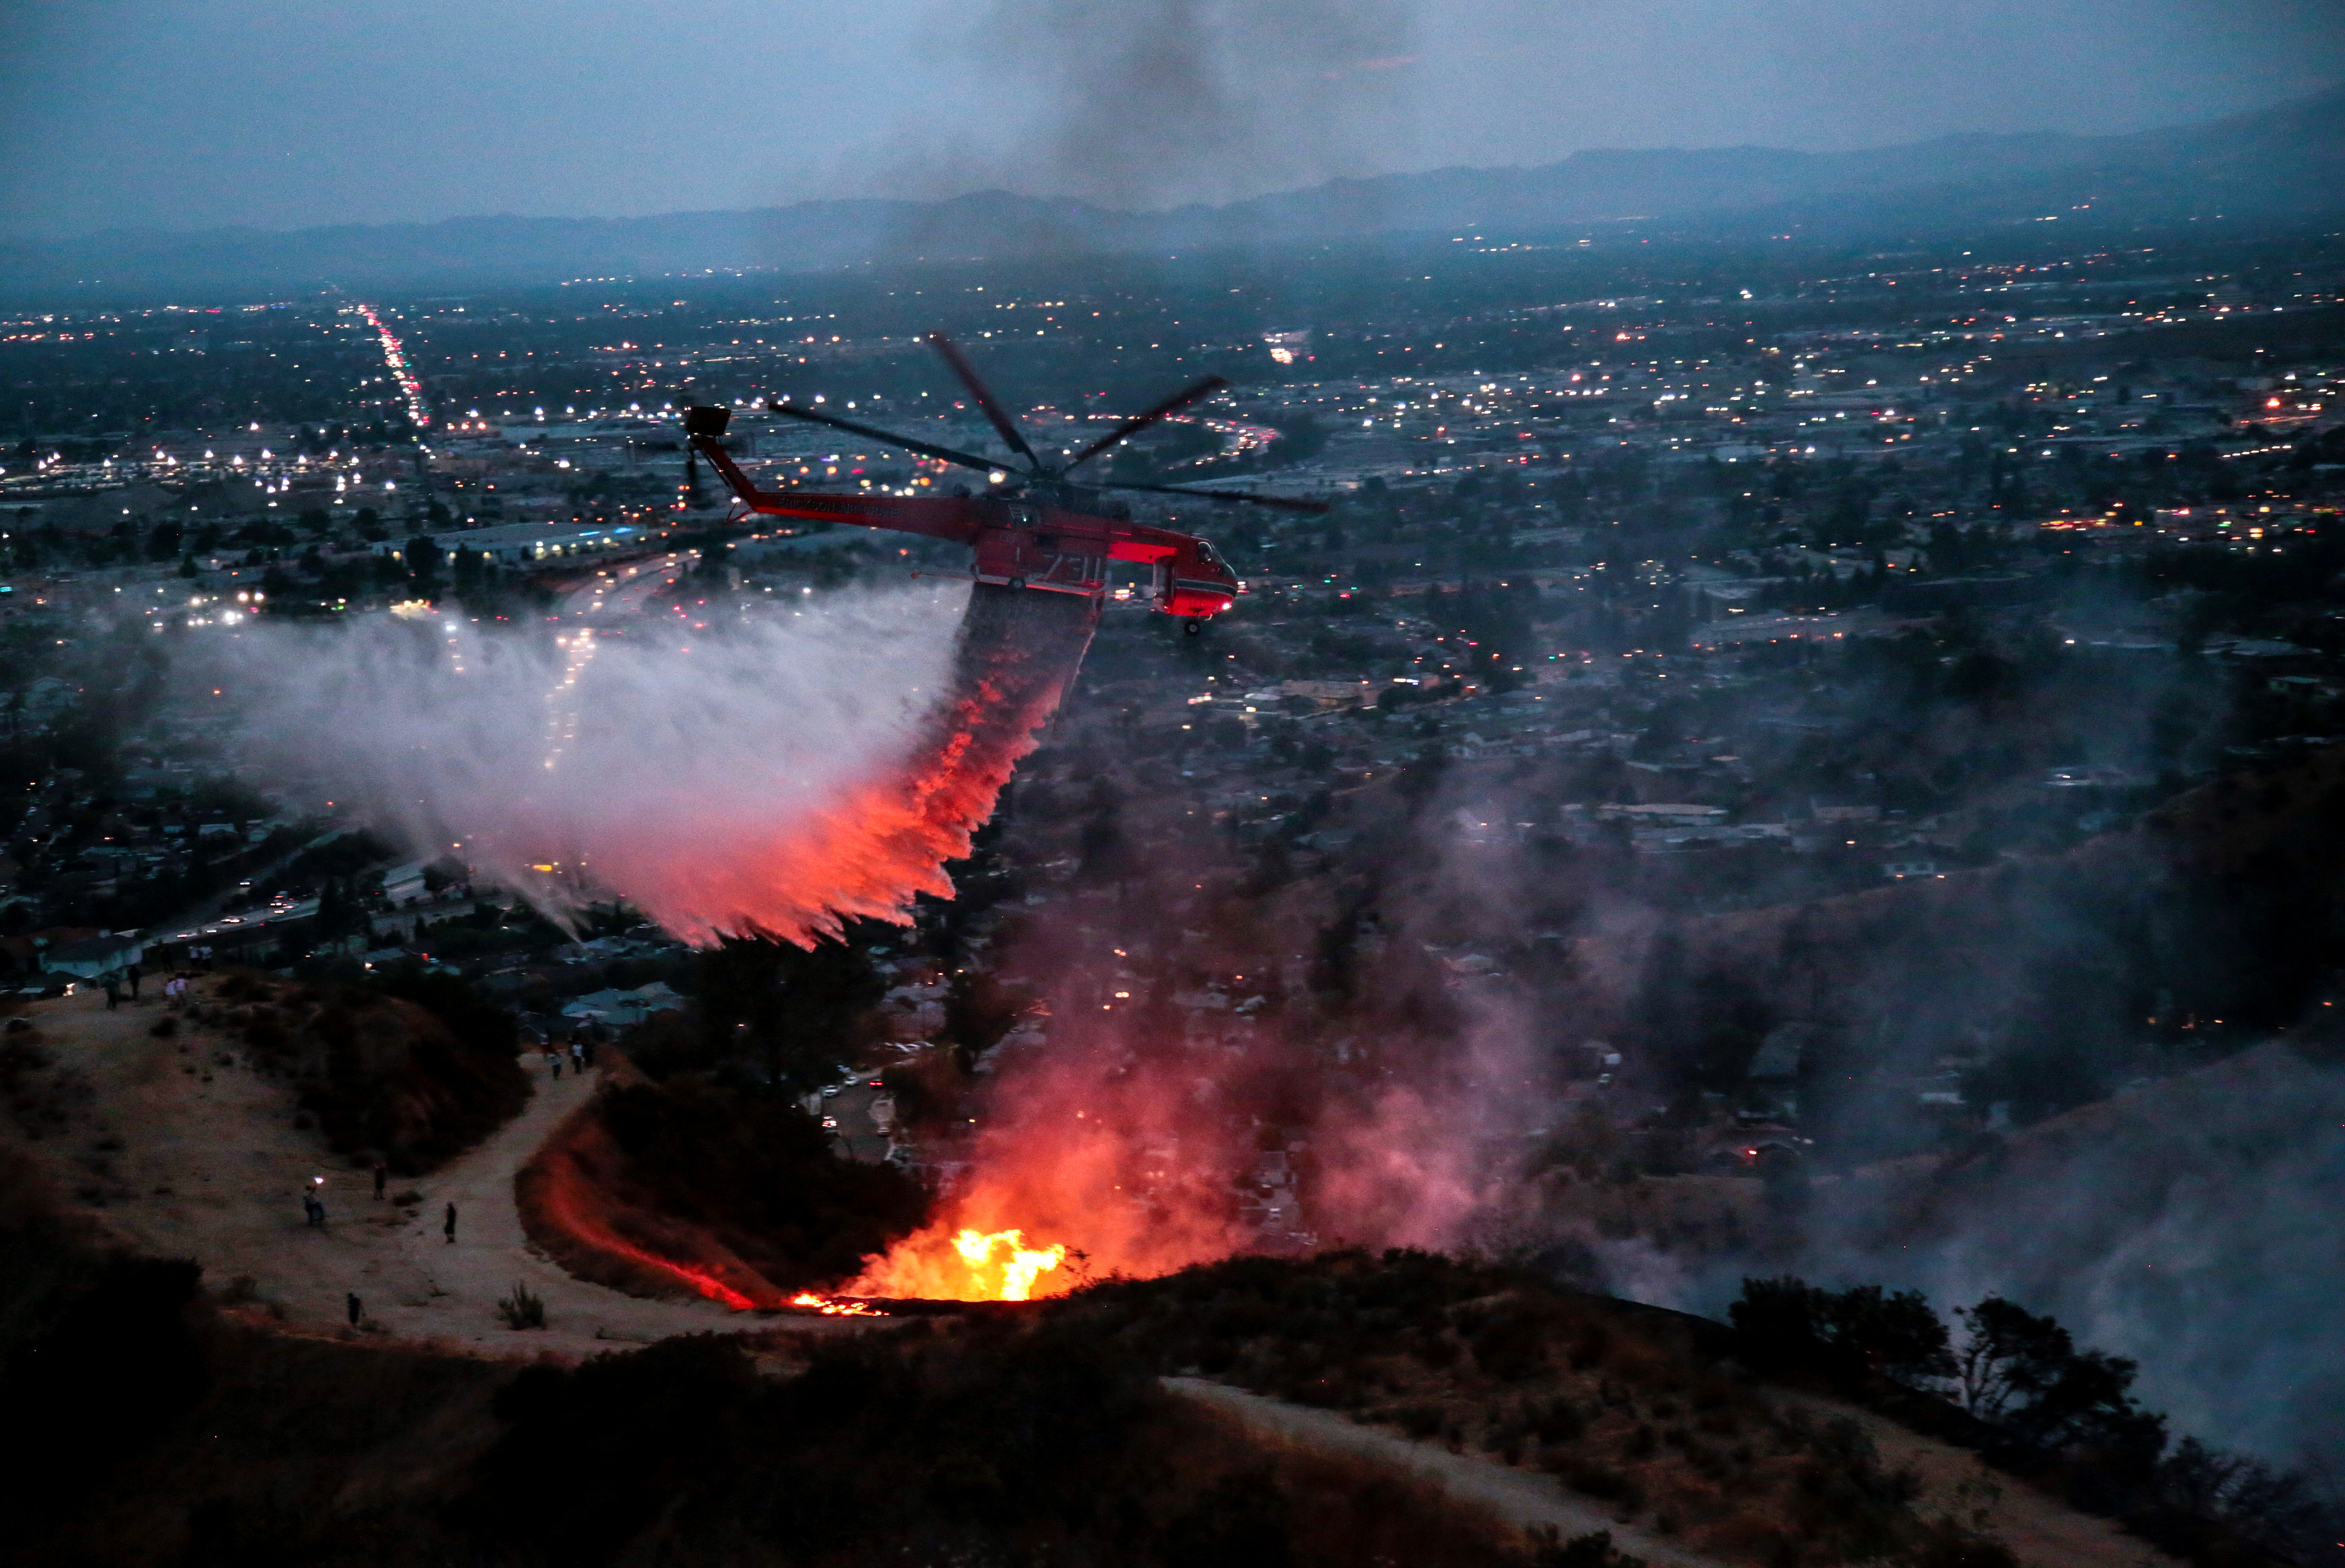 Water is dropped above homes in Sun Valley during the La Tuna Canyon fire over Burbank, California, U.S., September 2,